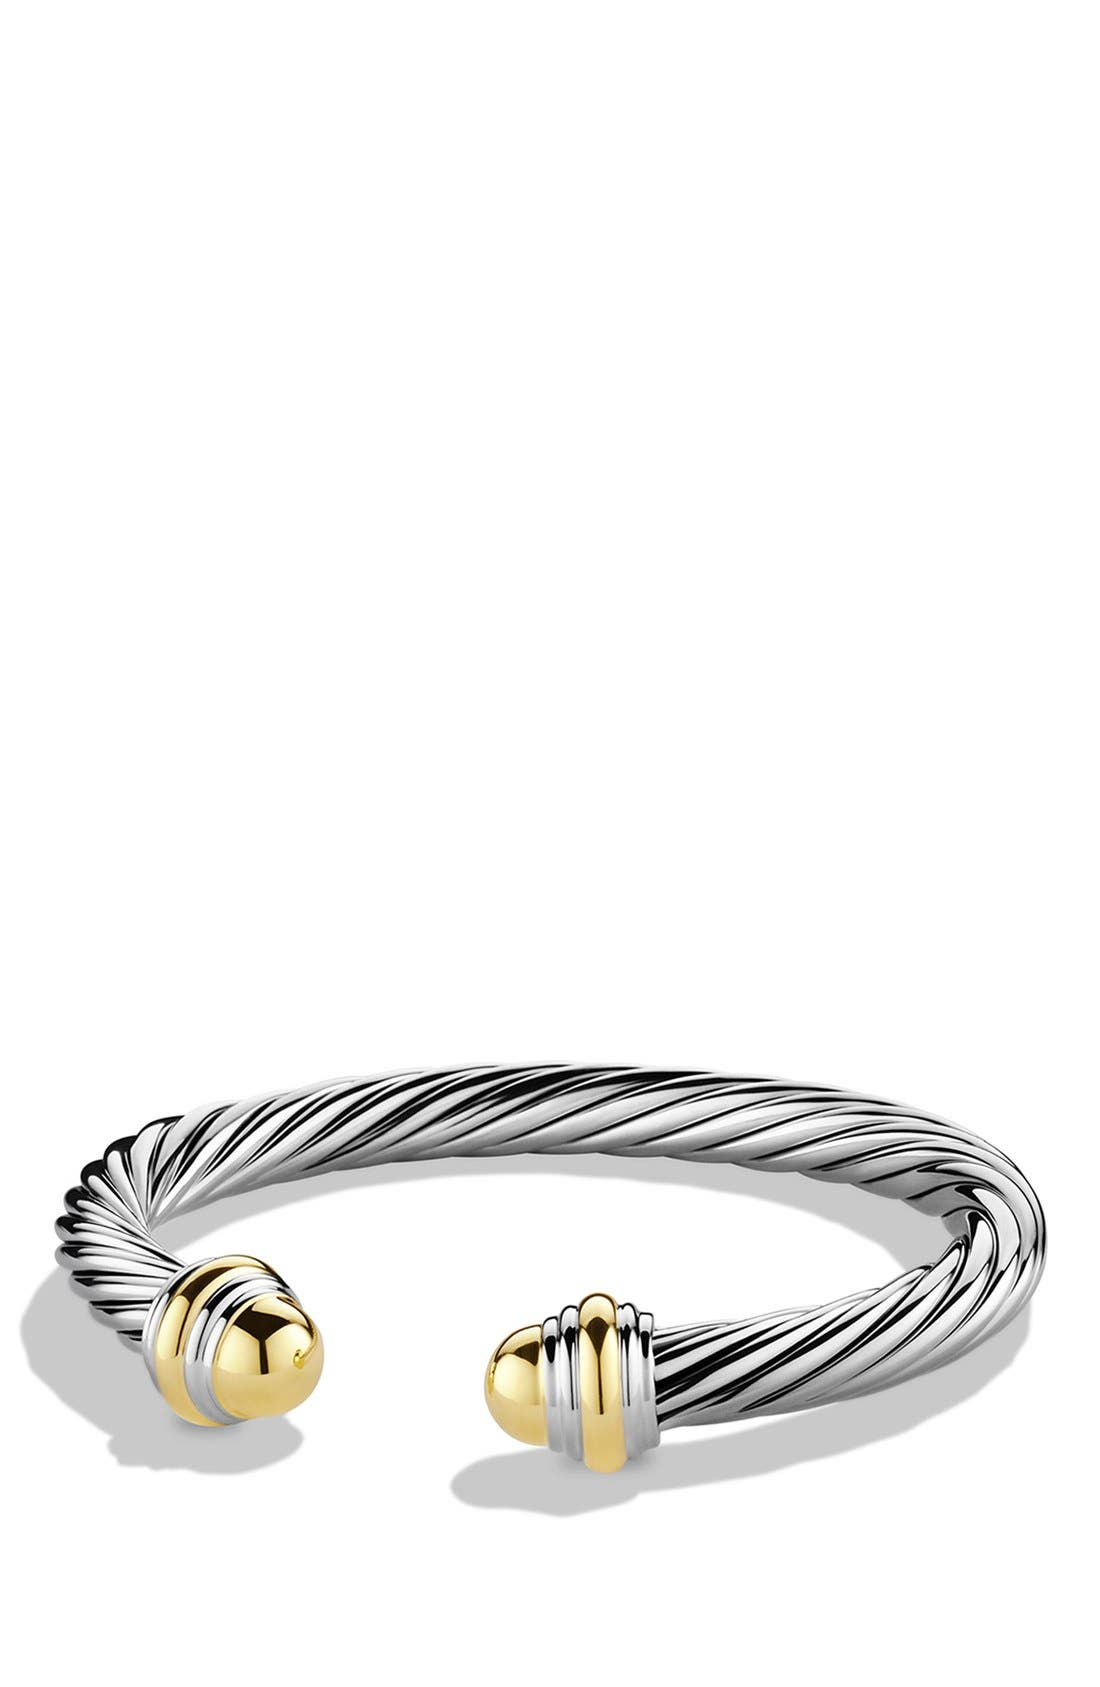 Cable Classics Bracelet with 14K Gold, 7mm,                             Main thumbnail 1, color,                             GOLD DOME